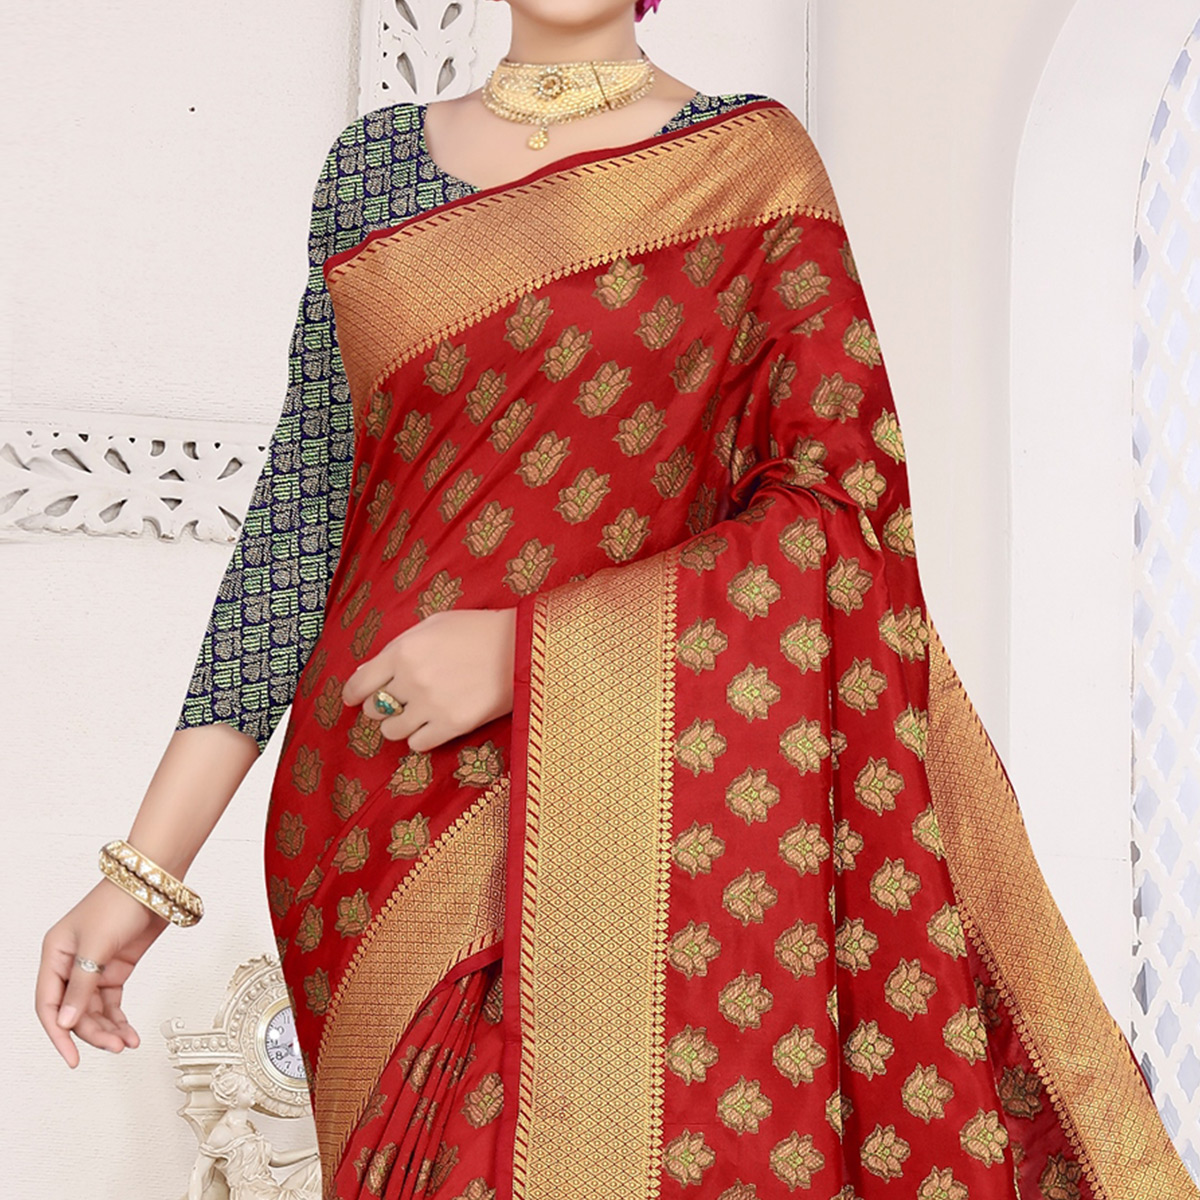 Majesty Maroon Colored Festive Wear Woven Cotton Saree With Jacquard Border